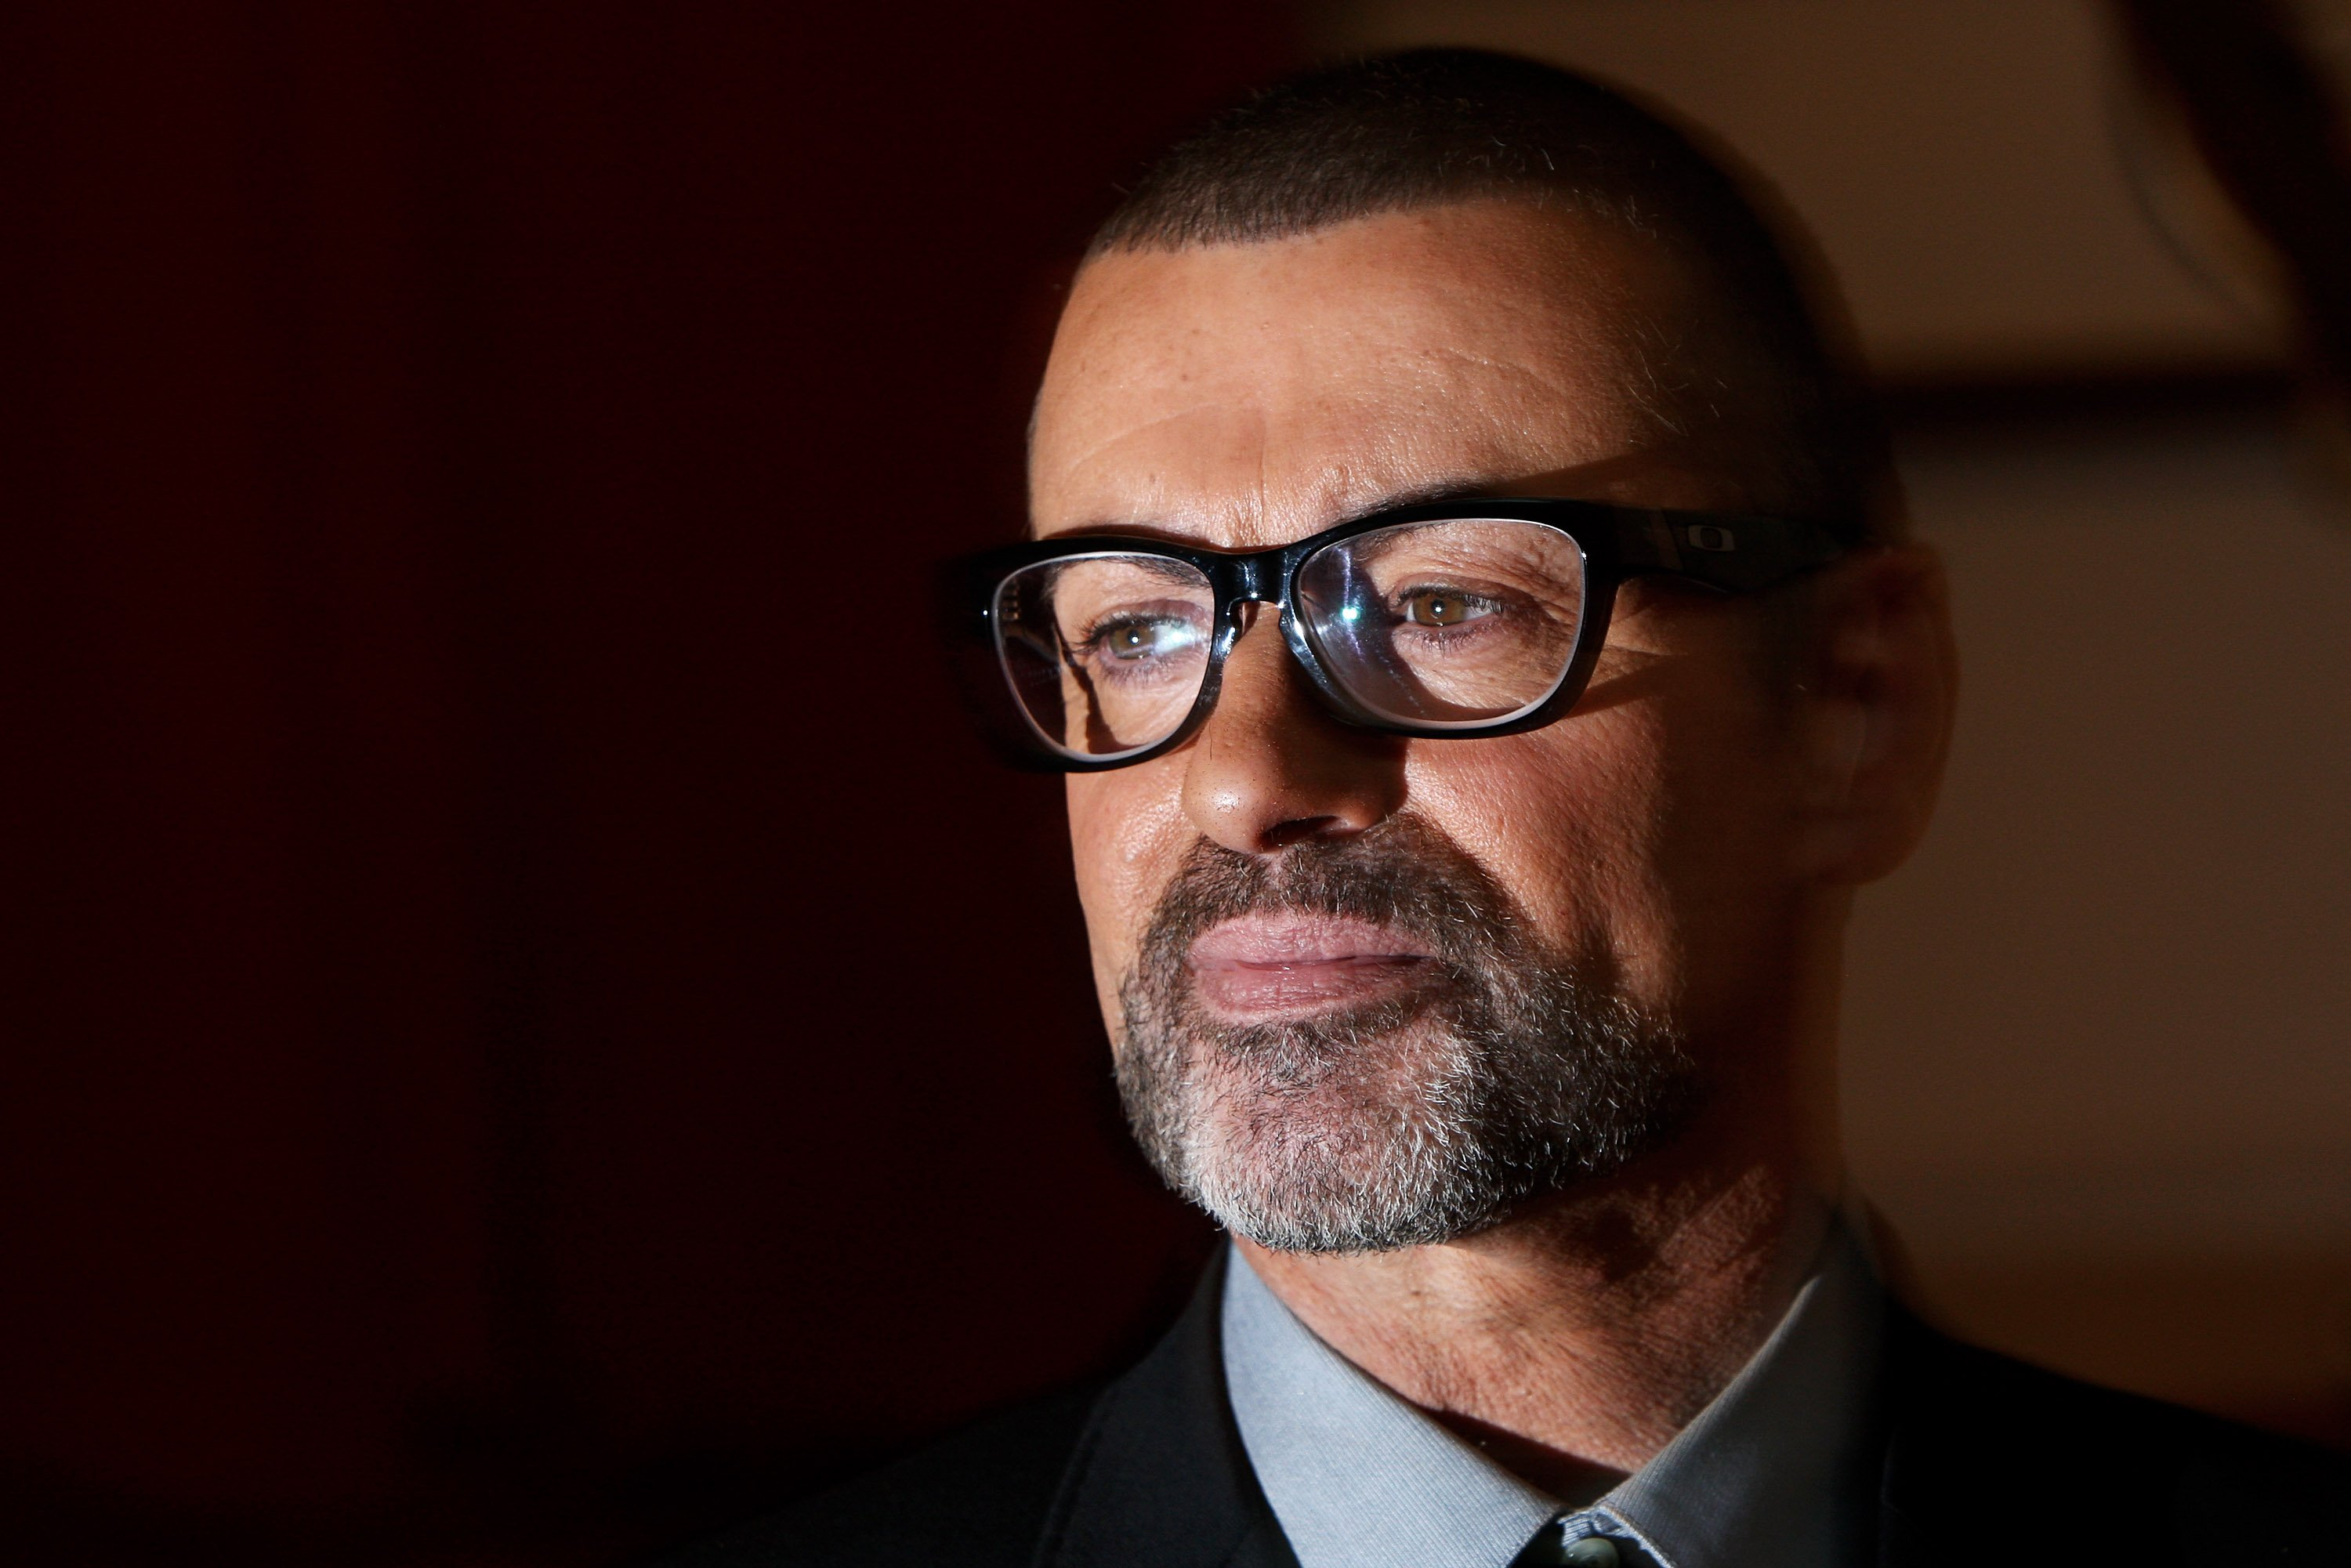 Image Source: Getty Images/A photo of George Michael